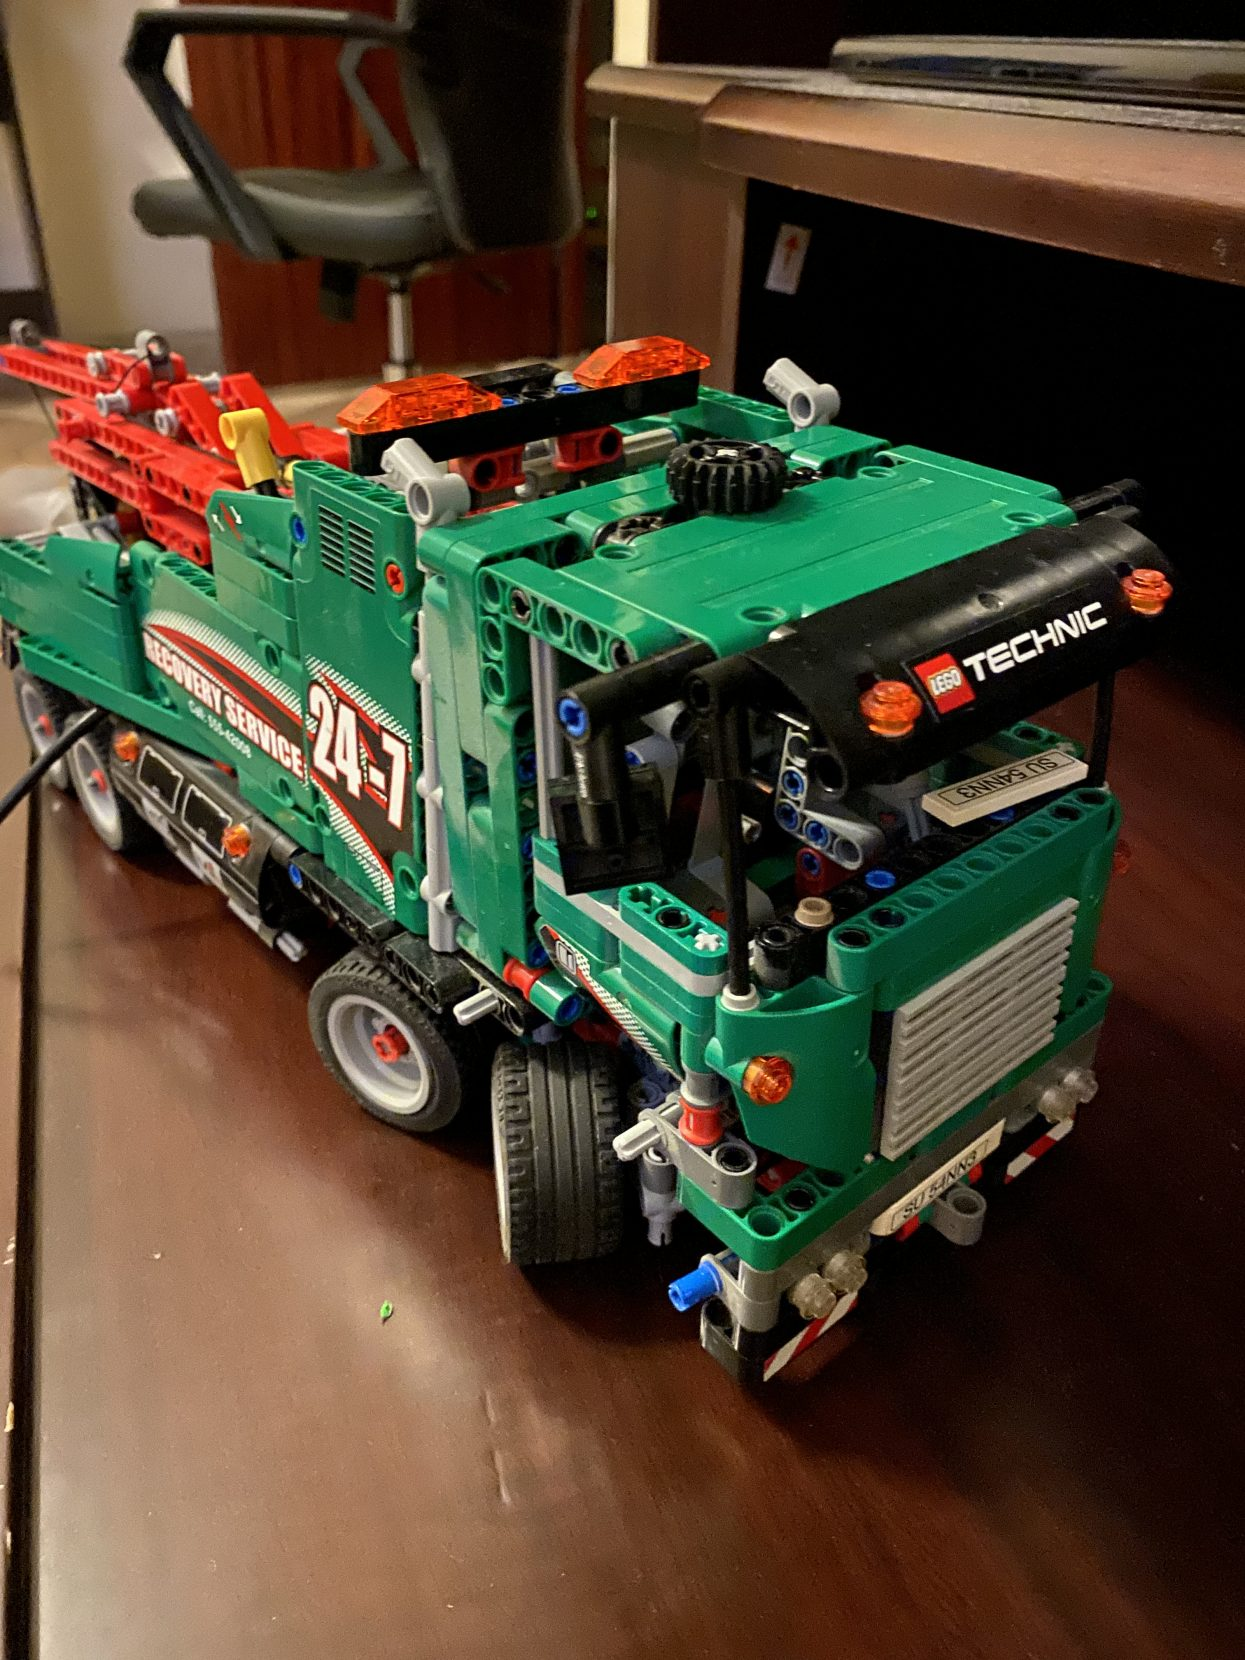 An already finished complete lego truck